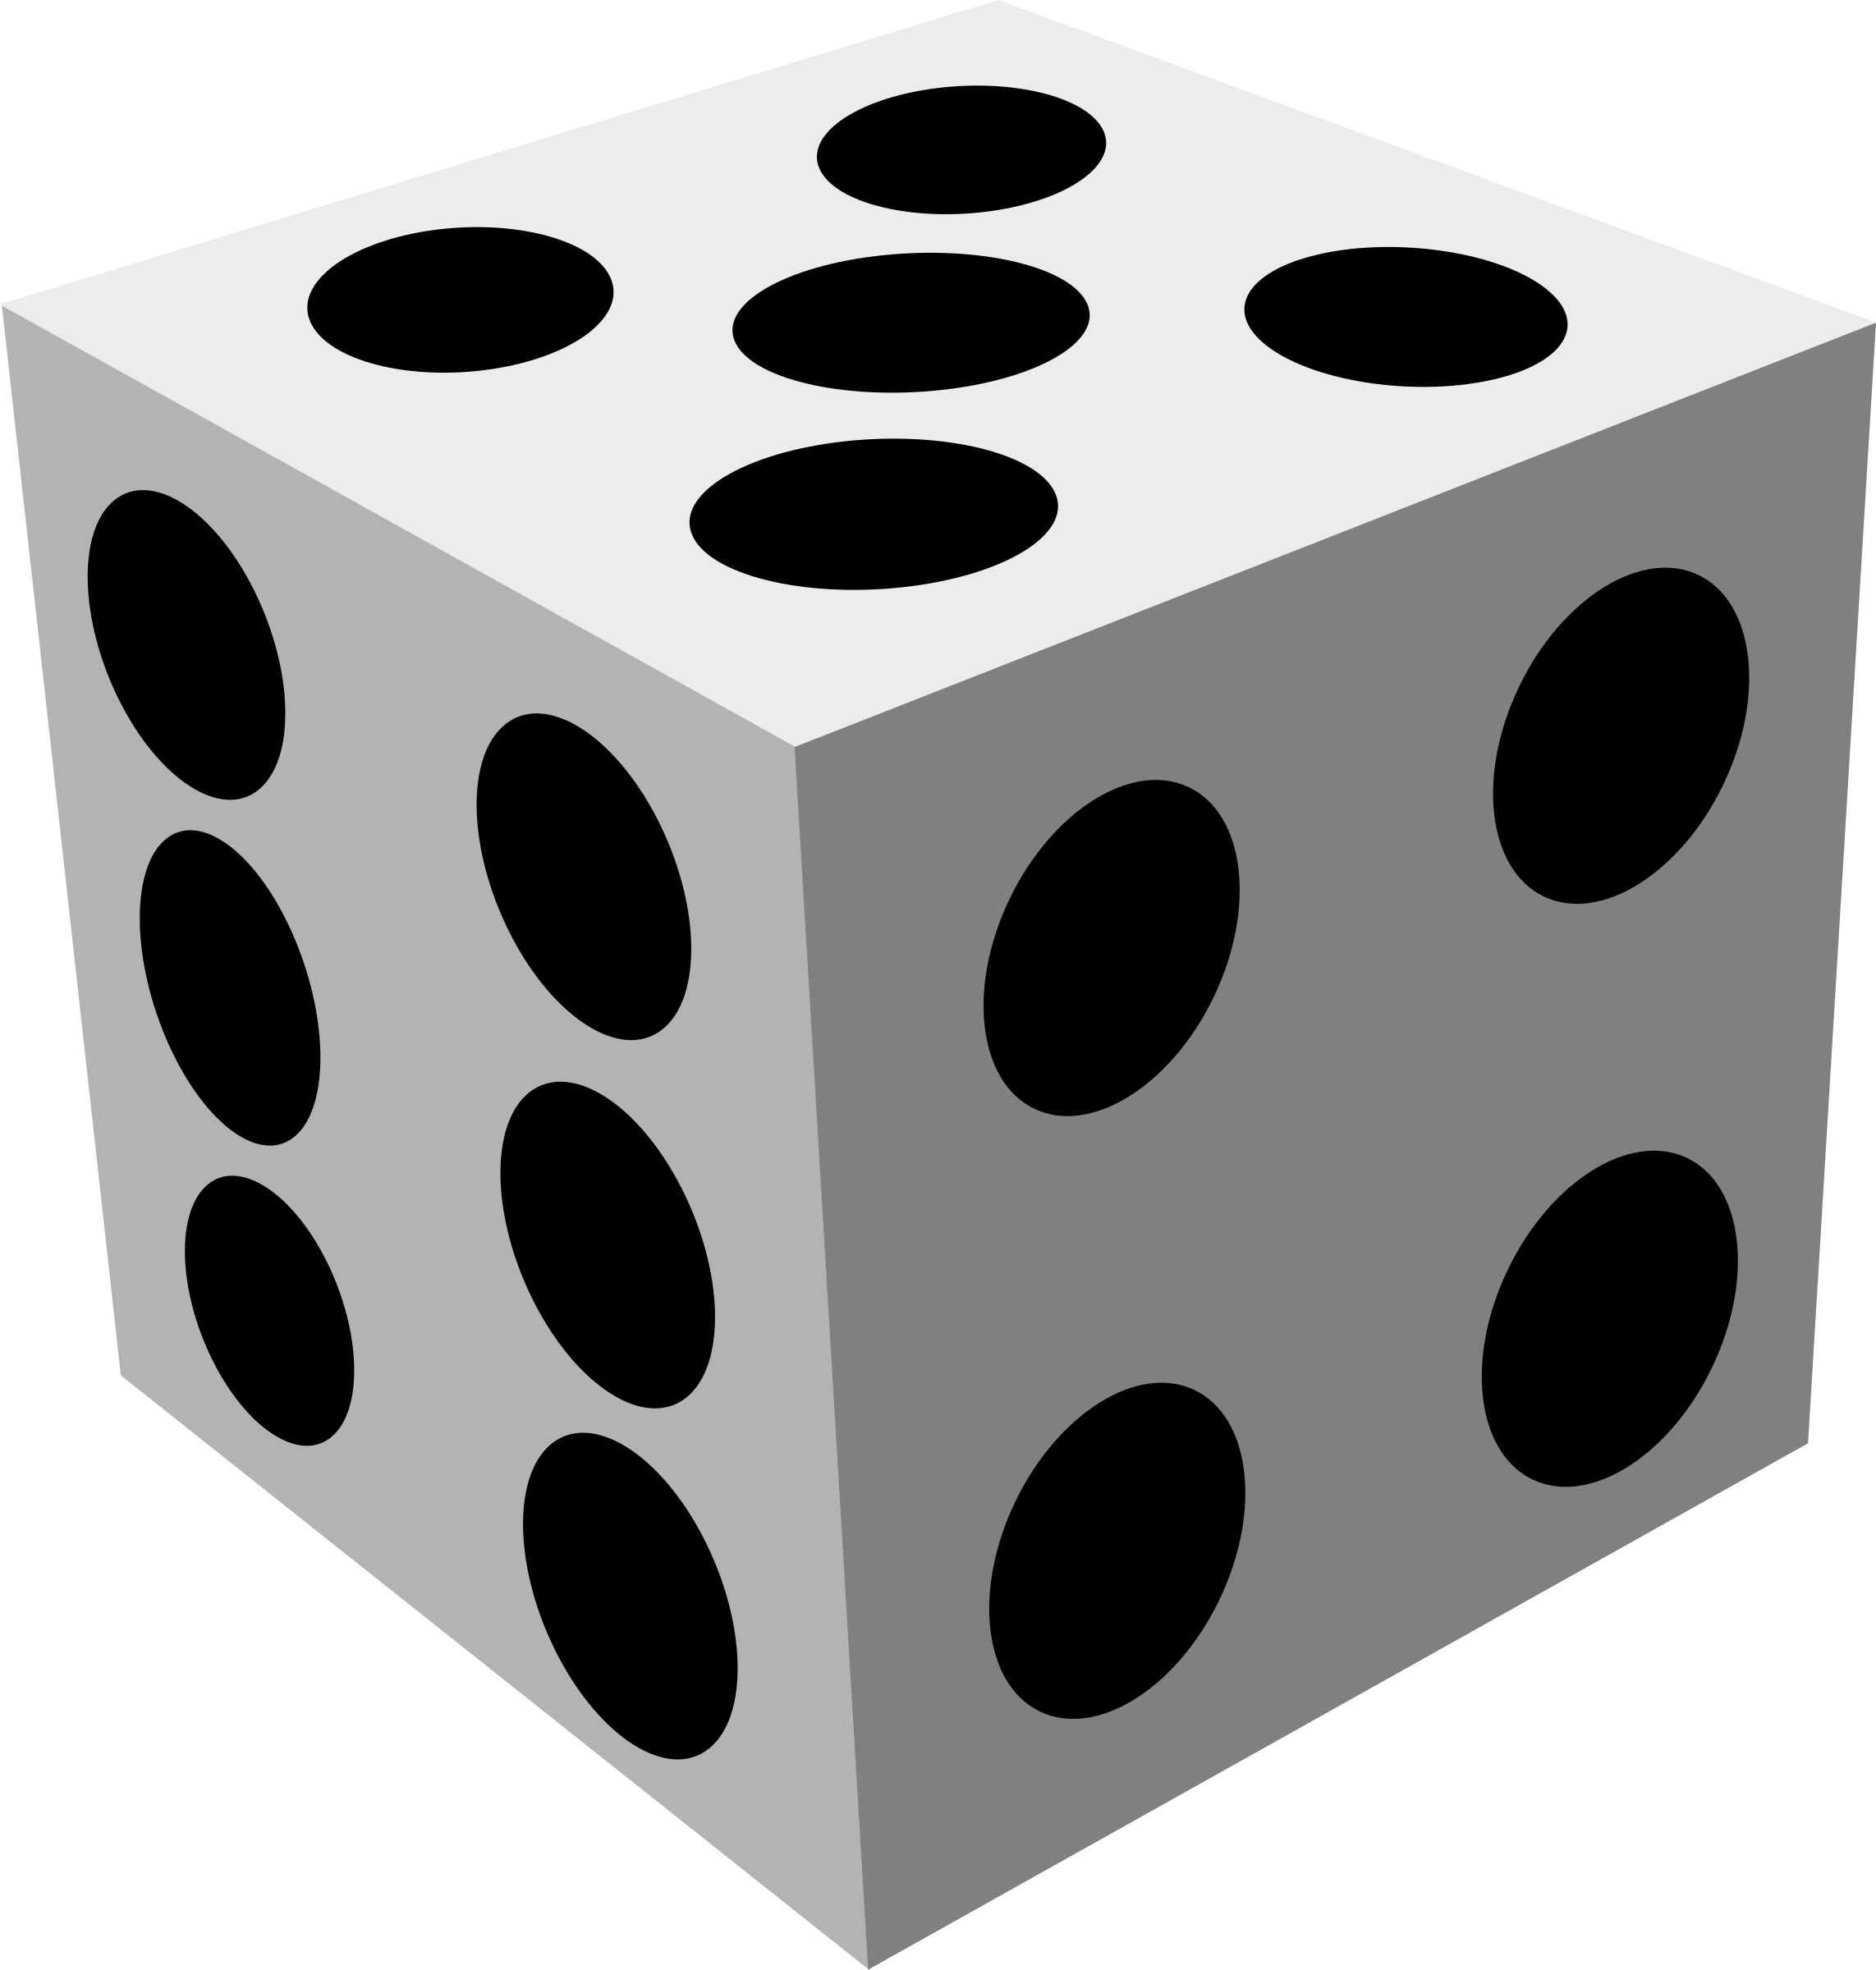 Icons png free and. Dice clipart colored dice